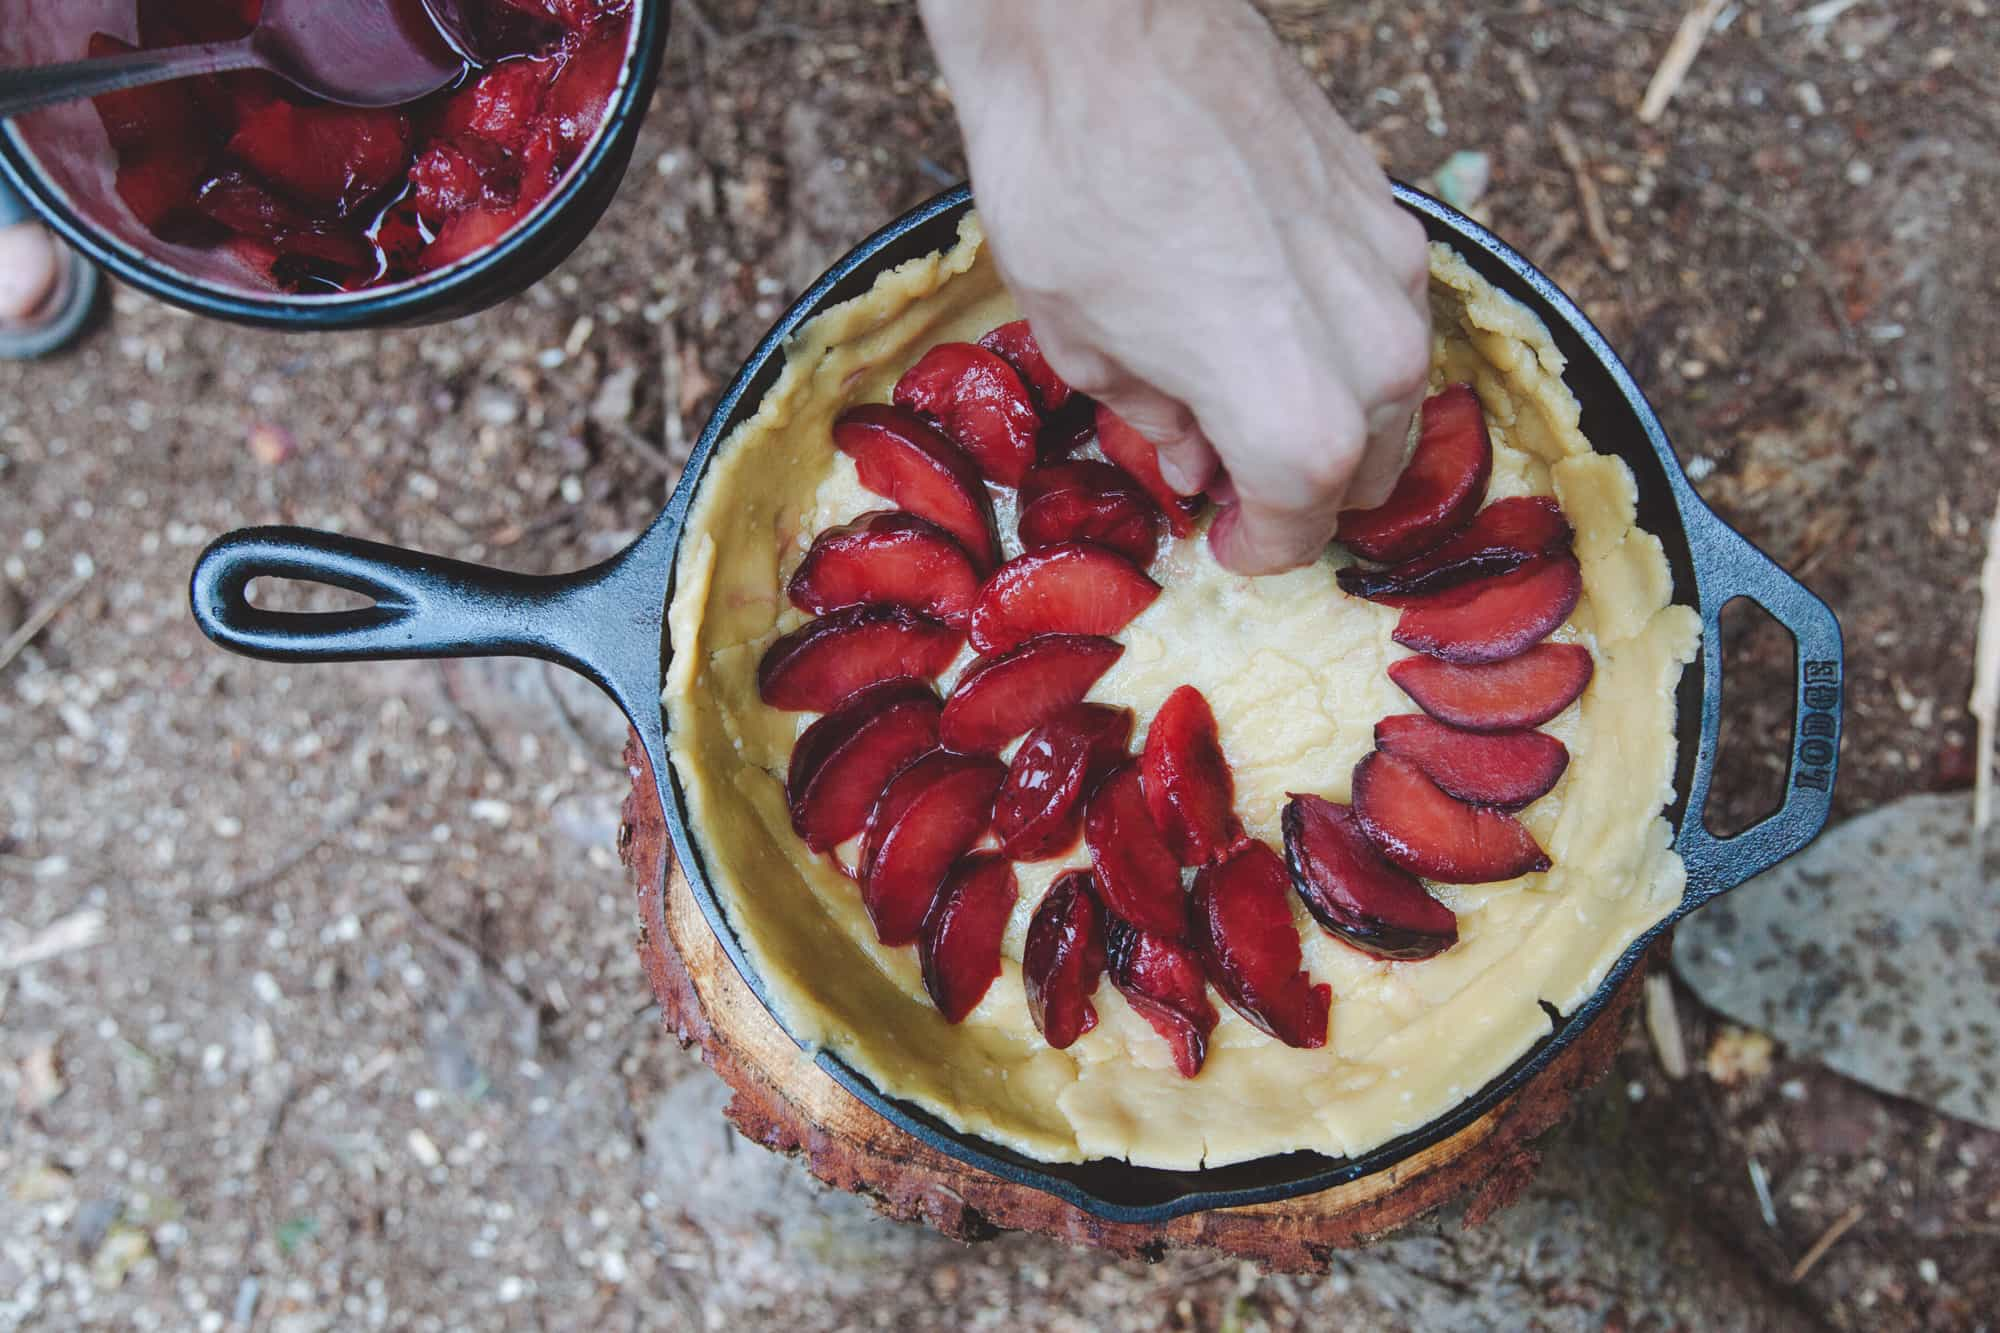 Building a plum tart in a cast iron skillet.